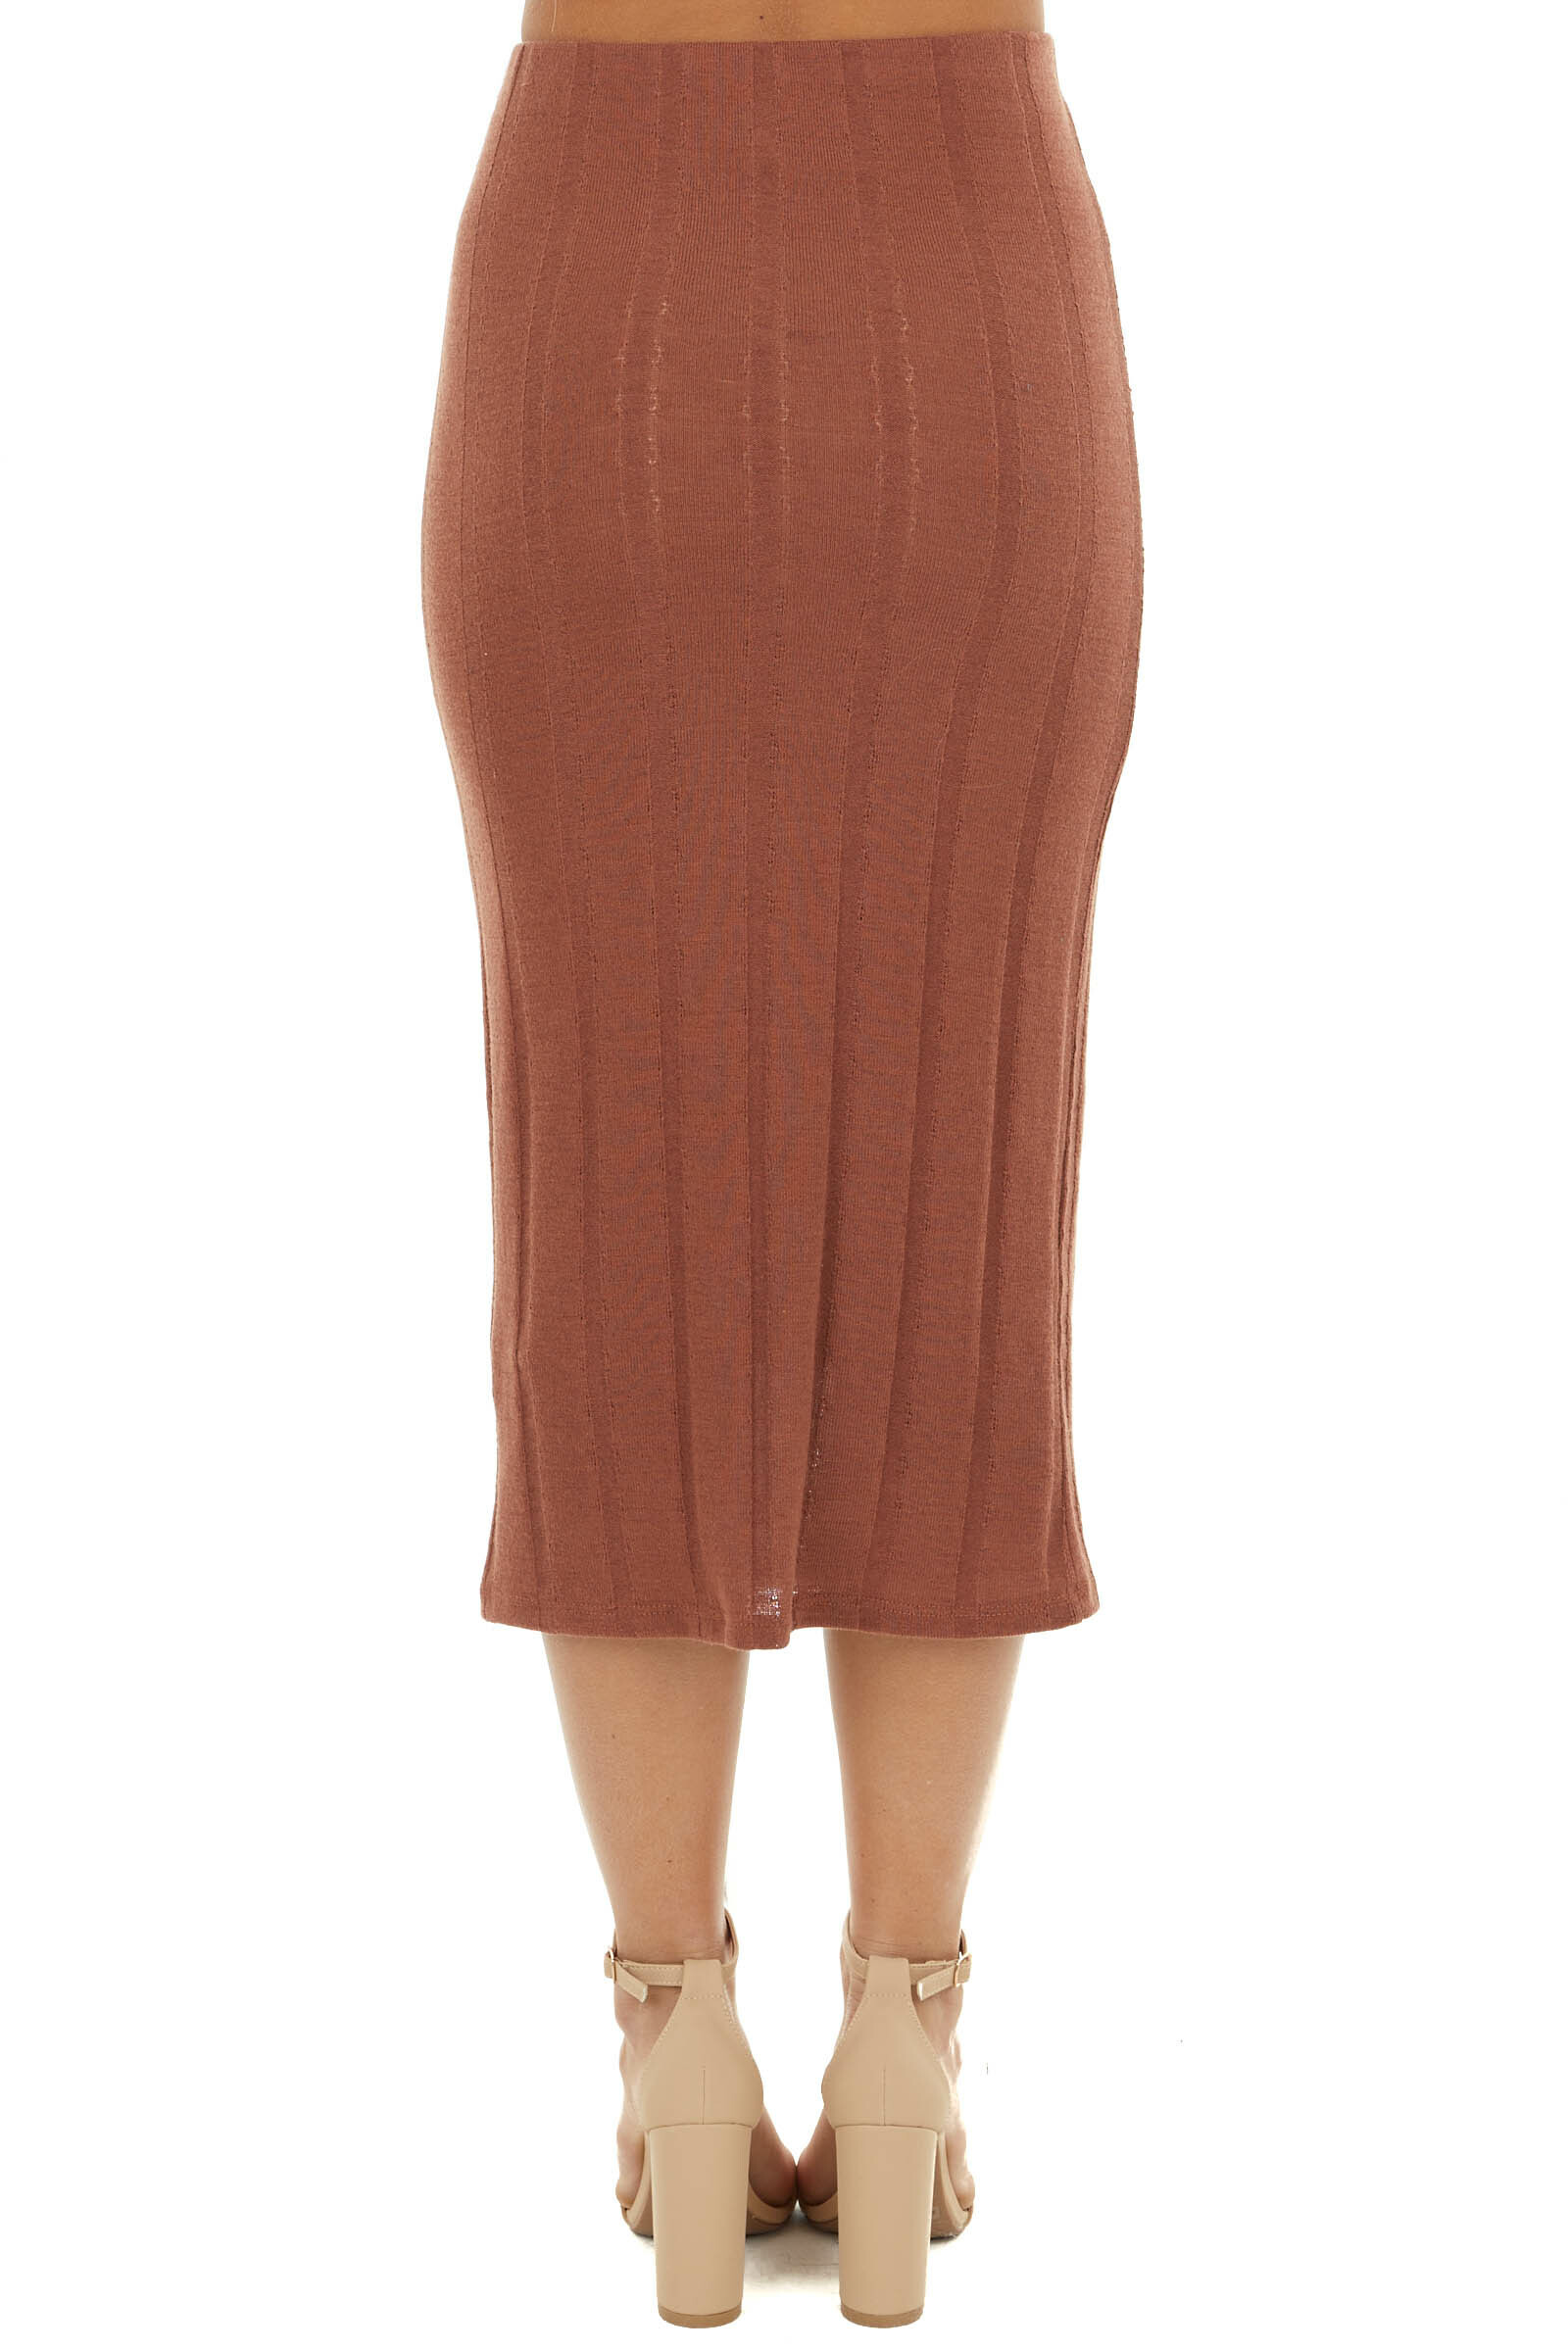 Sienna Ribbed Knit Midi Skirt with Elastic Waistband